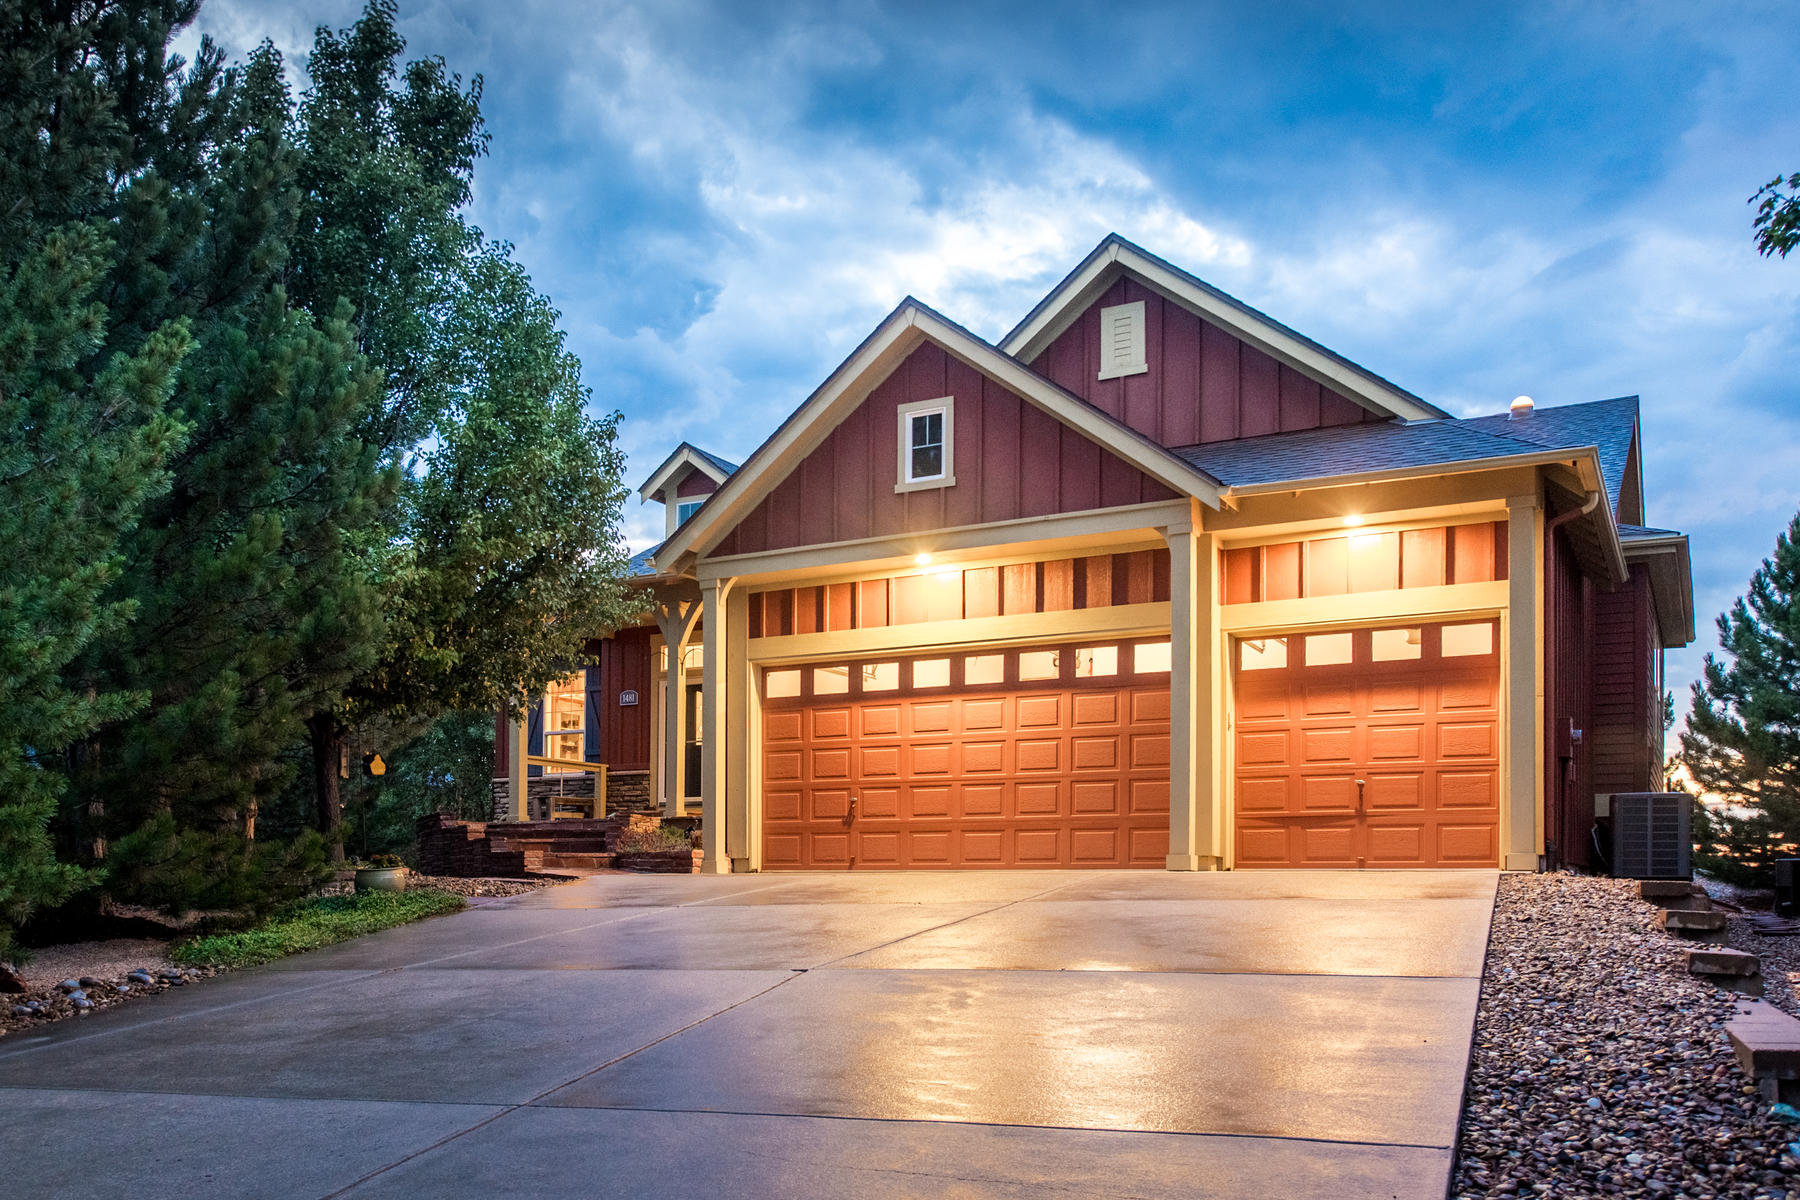 Single Family Home for Active at Think Sunset Views and Sunrise Strolls 1481 Suncrest Rd Castle Pines, Colorado 80104 United States